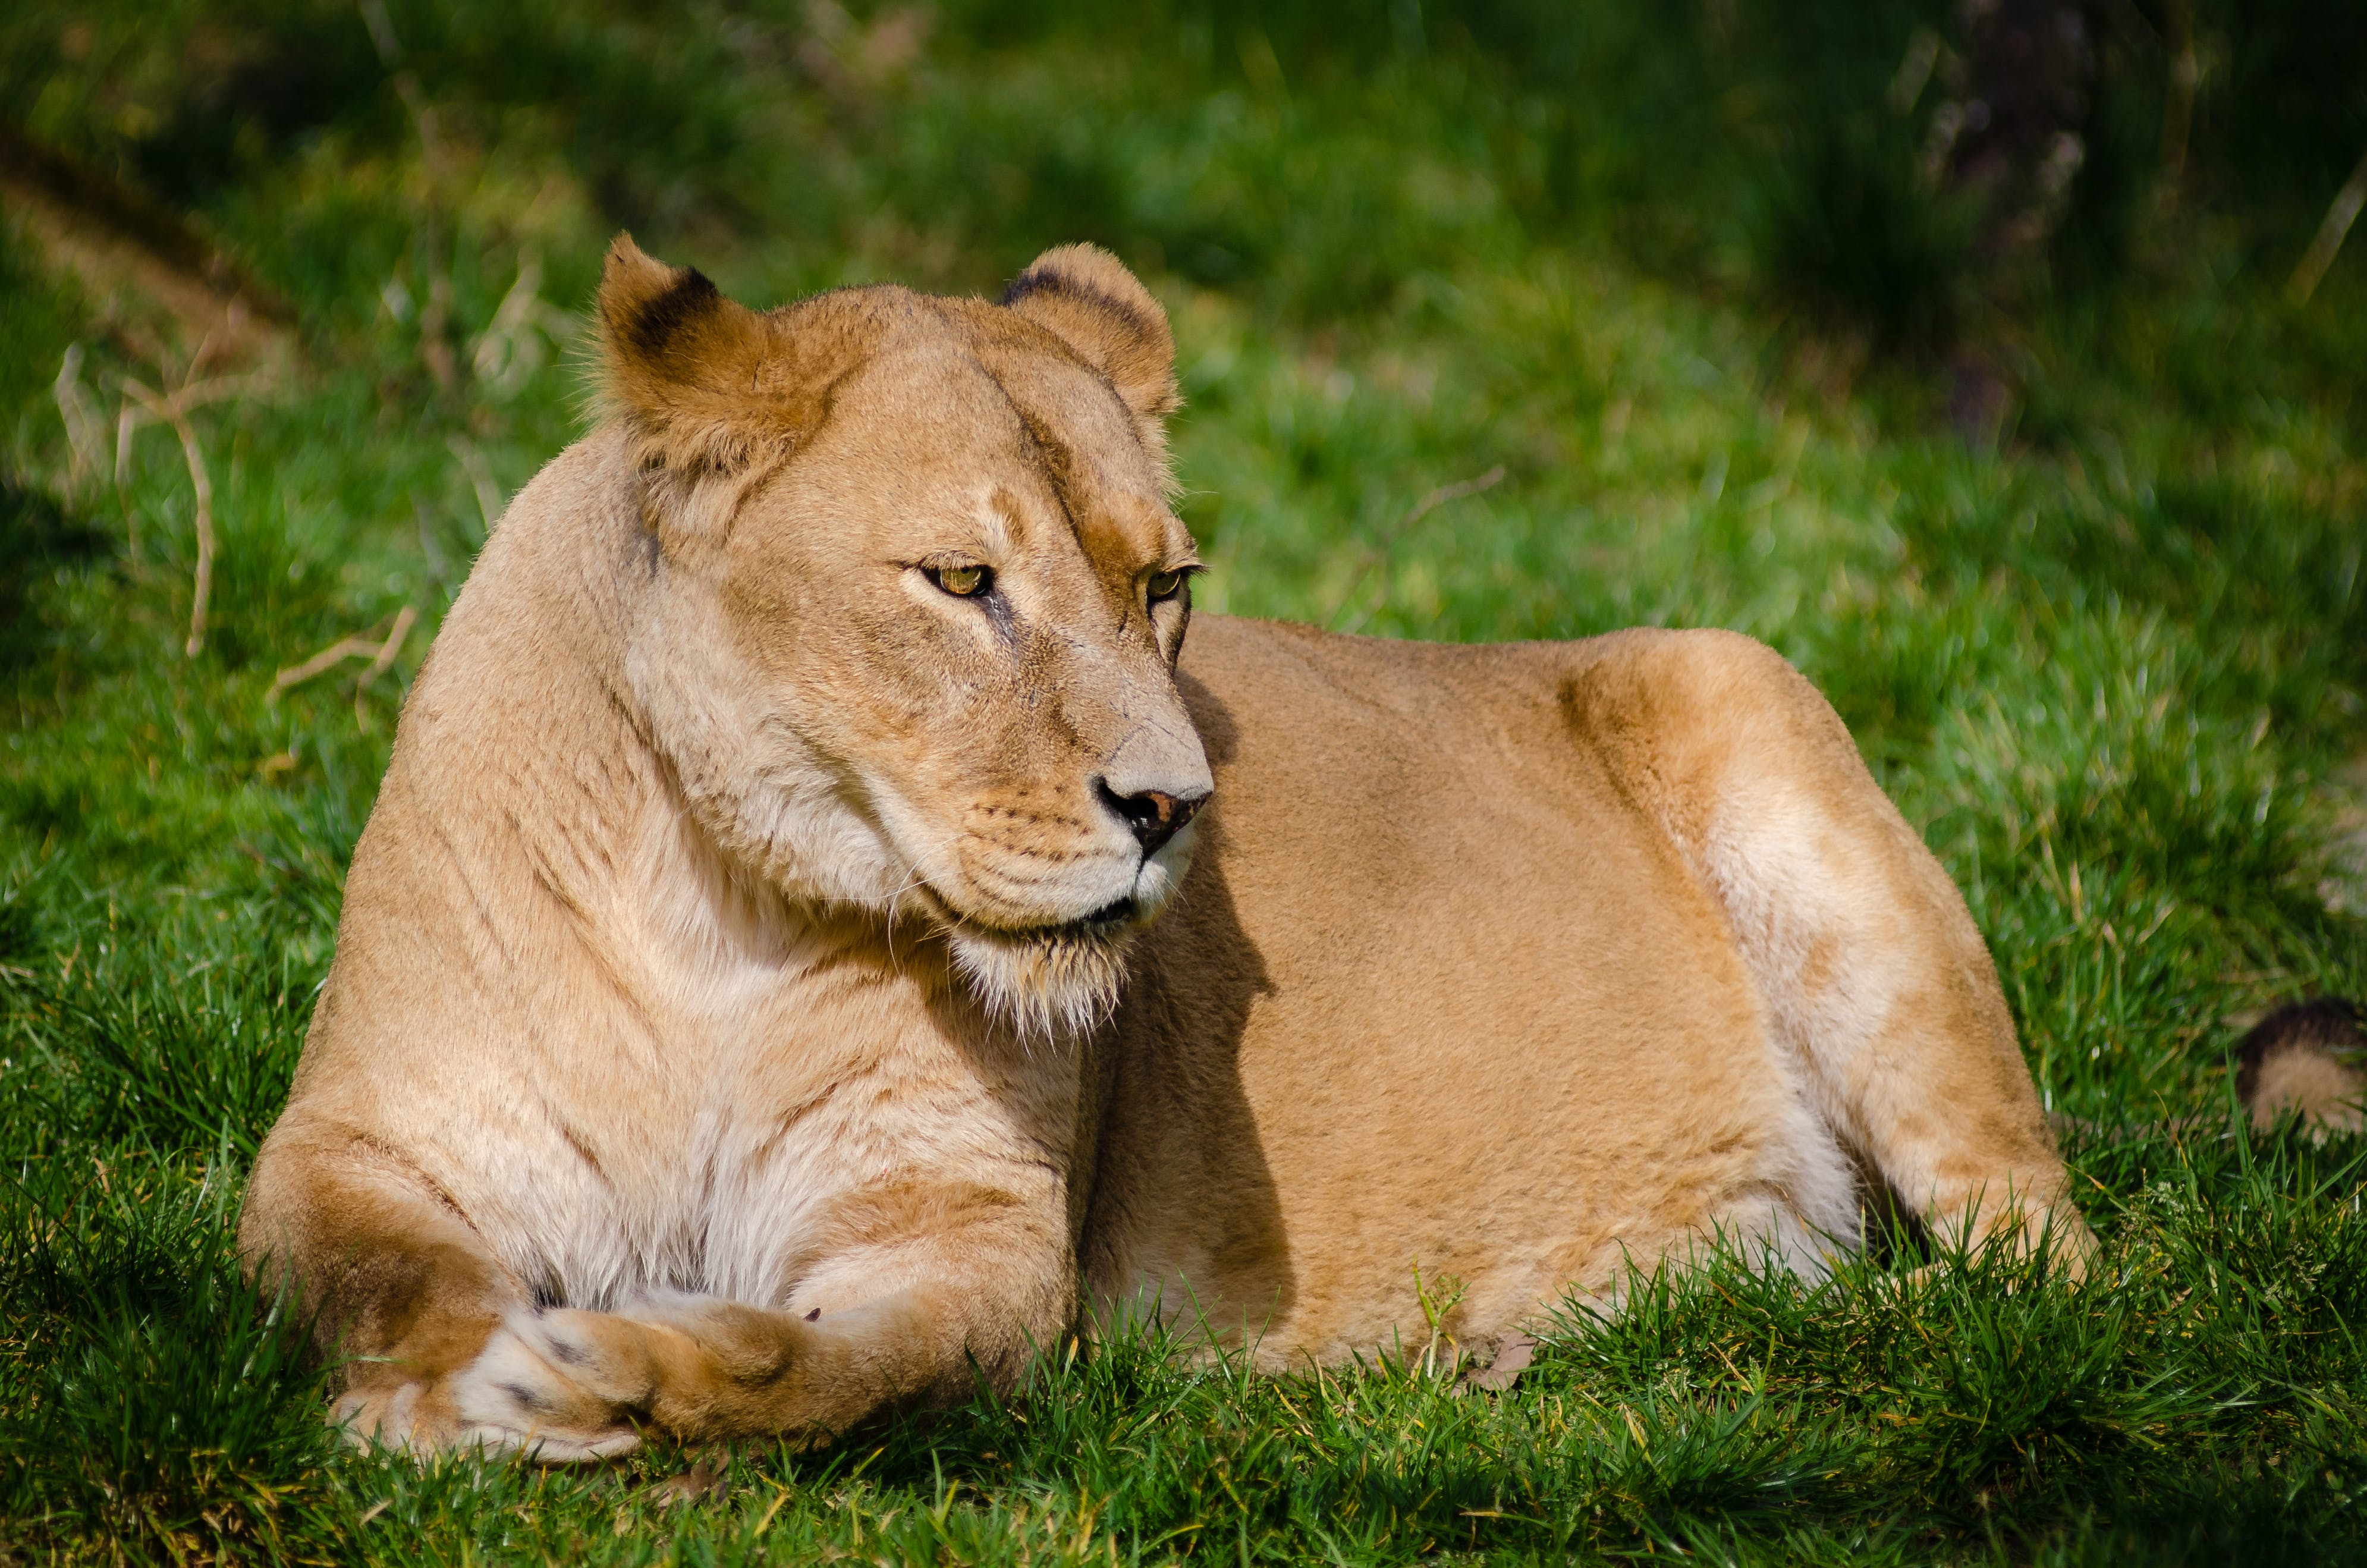 Brown Lioness Laying on Green Grass during Daytime